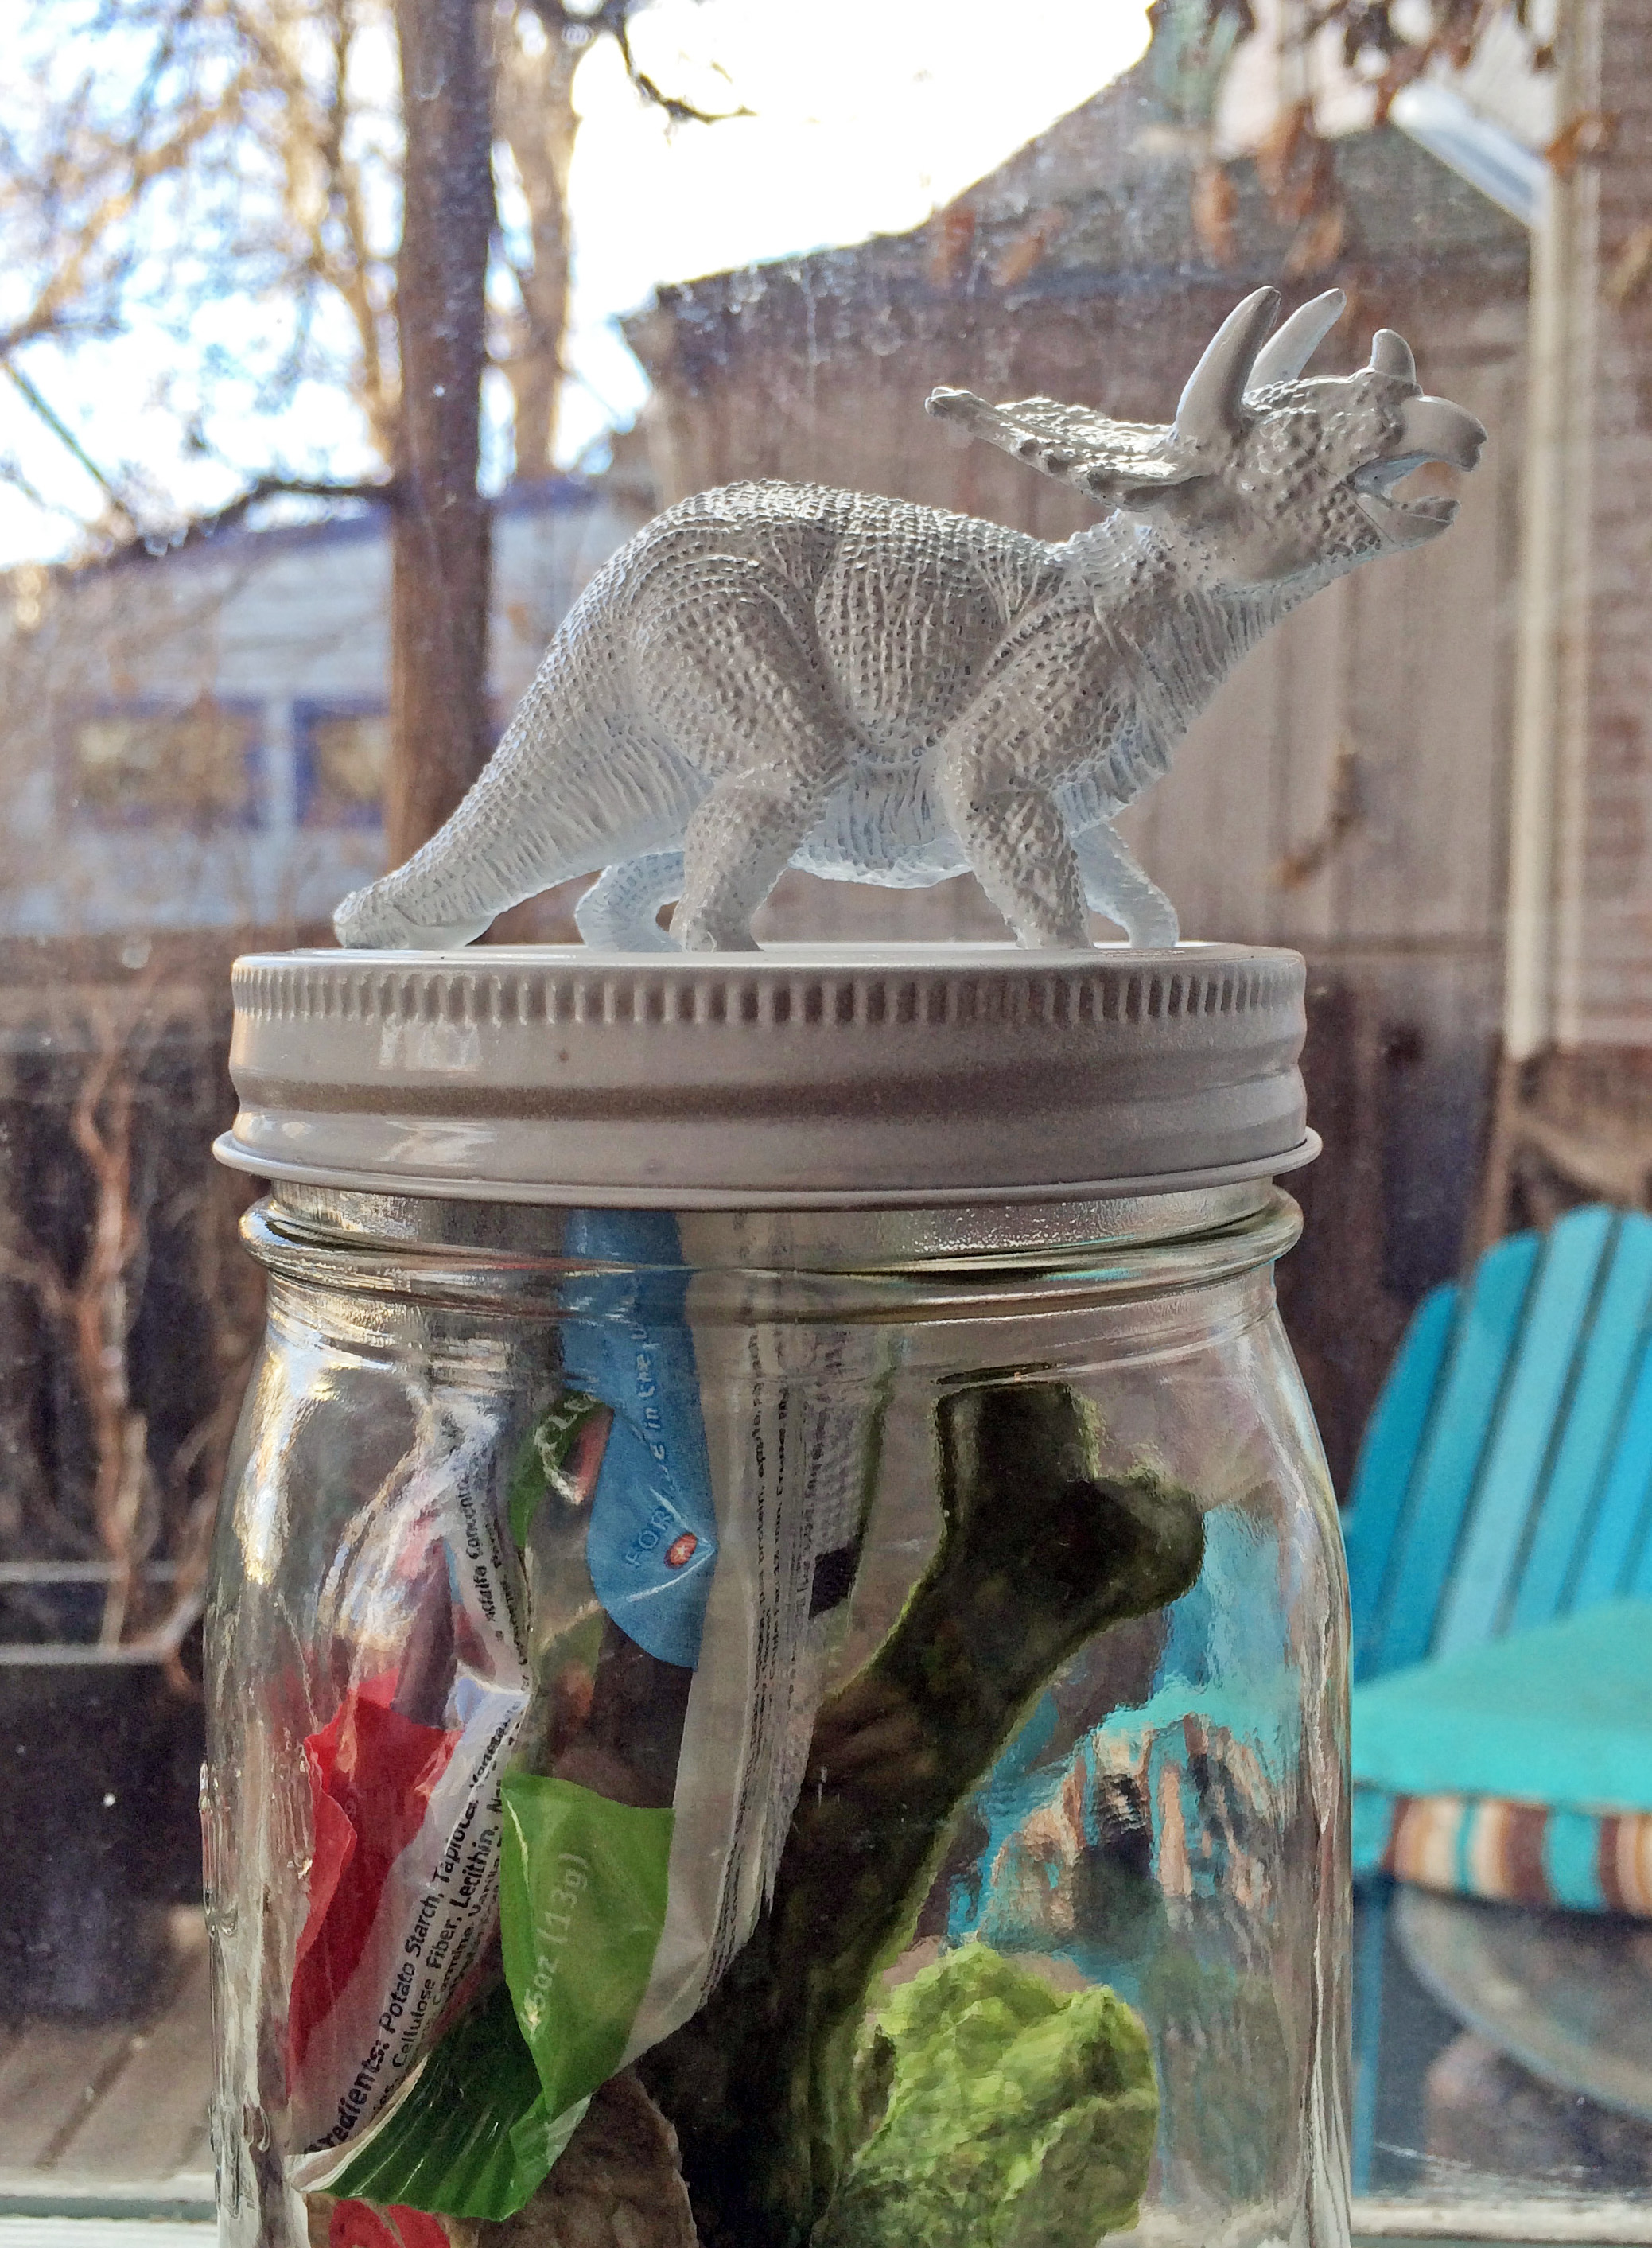 More Dinolicious KitschDIY Jar Toppers from Thriftstore Toy Dinosaurs  the Year of Living